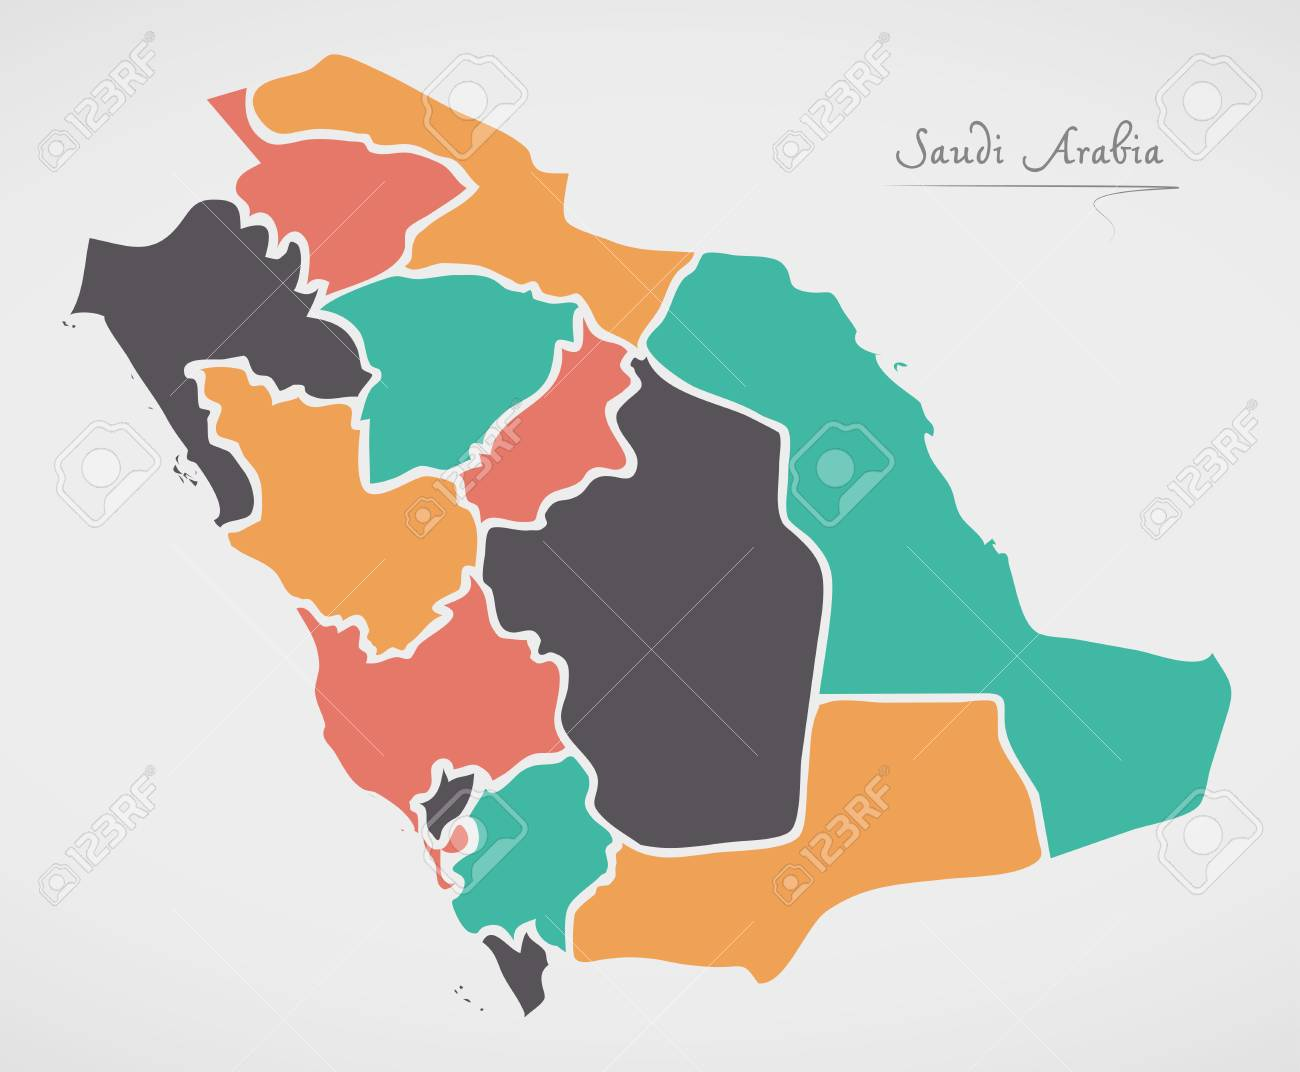 Saudi arabia map with states and modern round shapes royalty free saudi arabia map with states and modern round shapes stock vector 80784629 gumiabroncs Choice Image